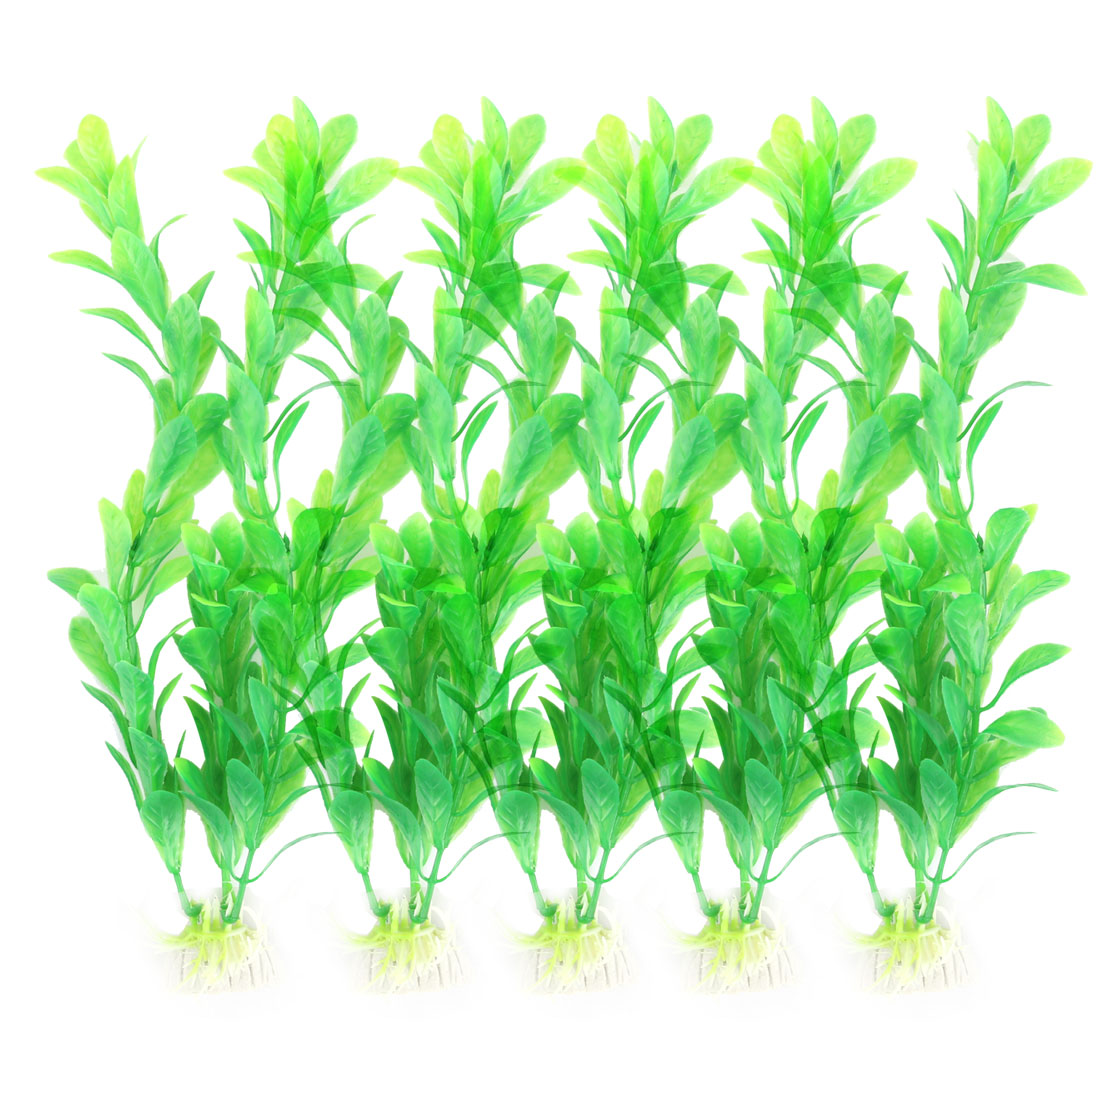 5 Pcs Fish Tank Aquarium Plants Grass Ornament Decor